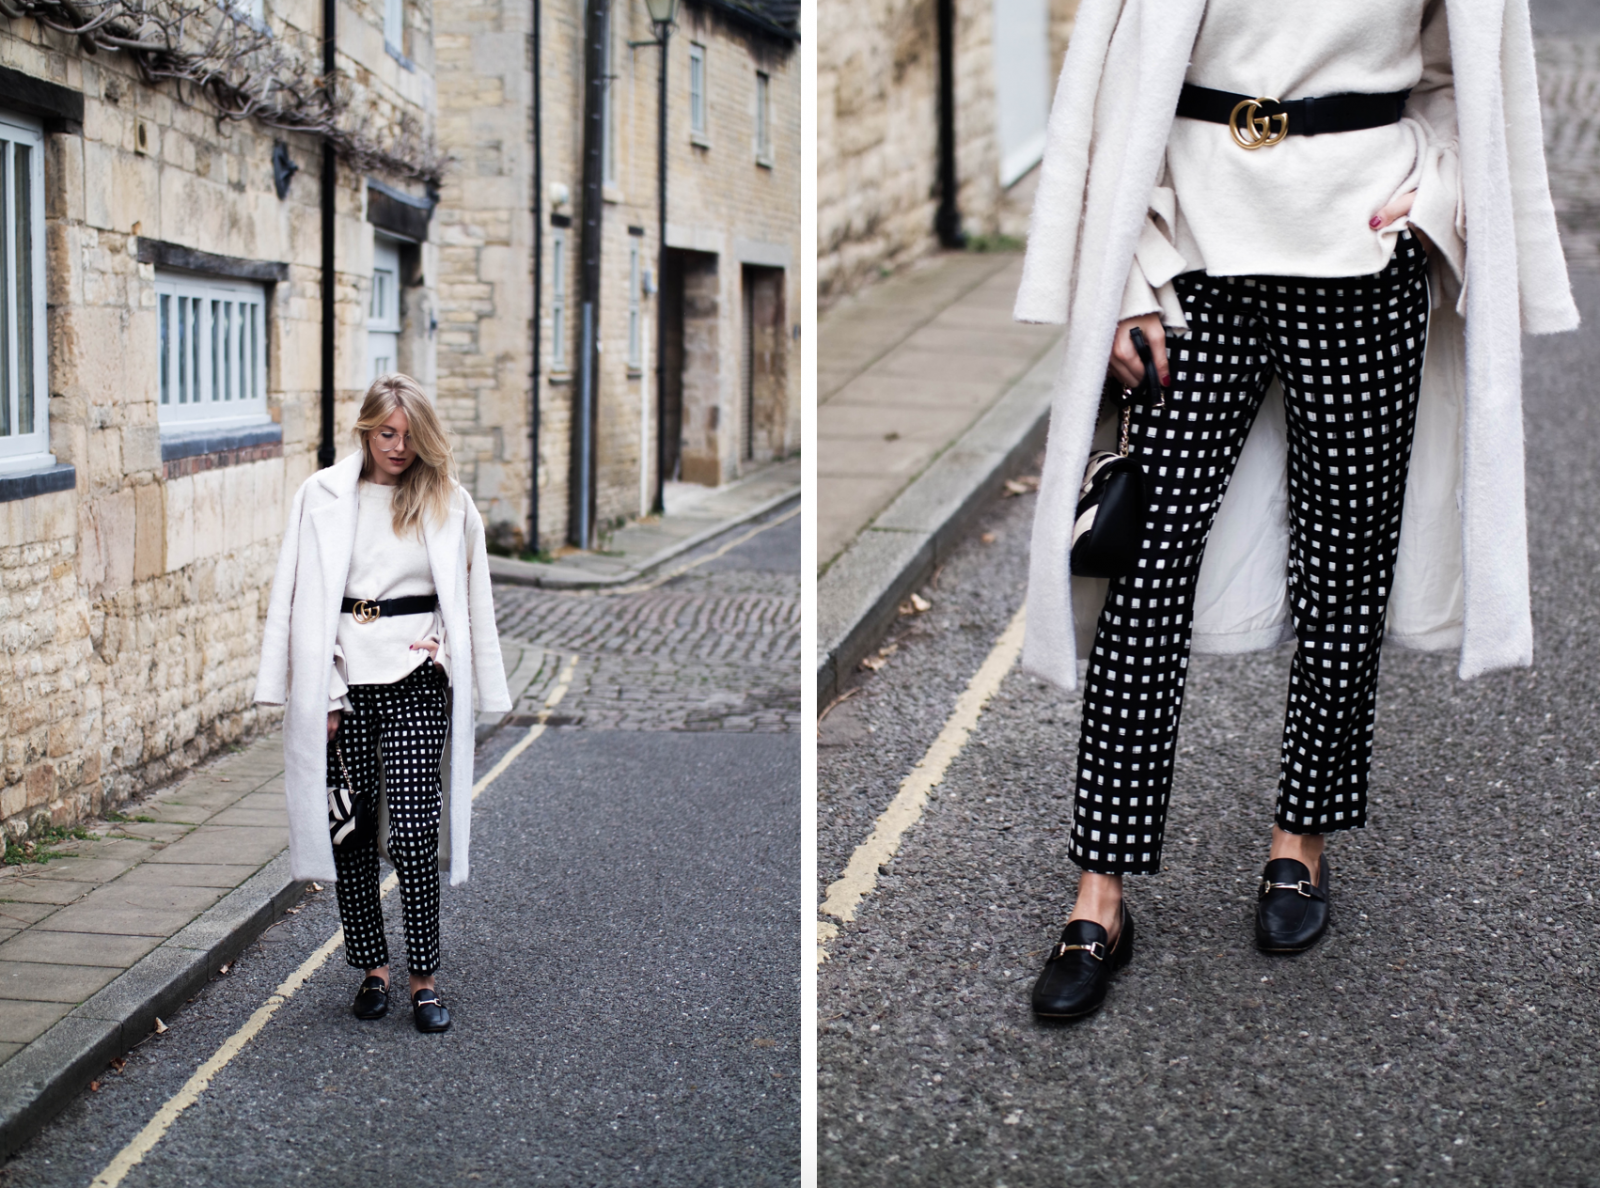 Printed Trousers Trying Something New - Fashion Blogger Styling Tips